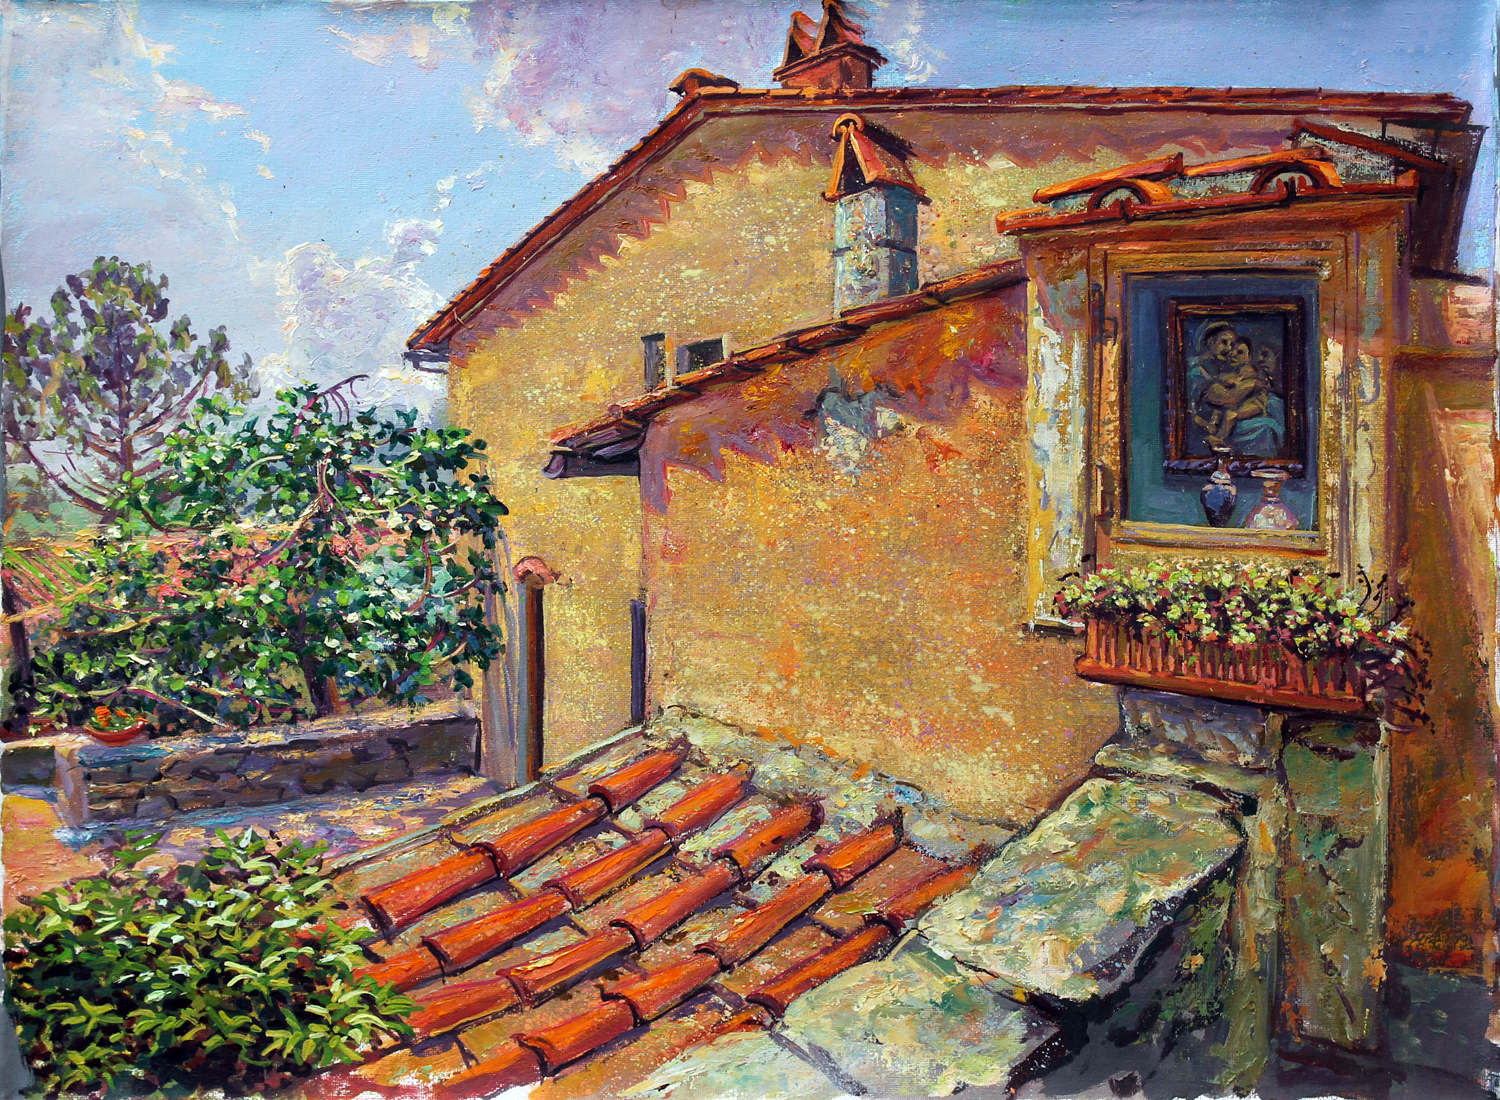 Our painting group's base twenty minutes from Florence:  Querce Seconda, Romola, Tuscany